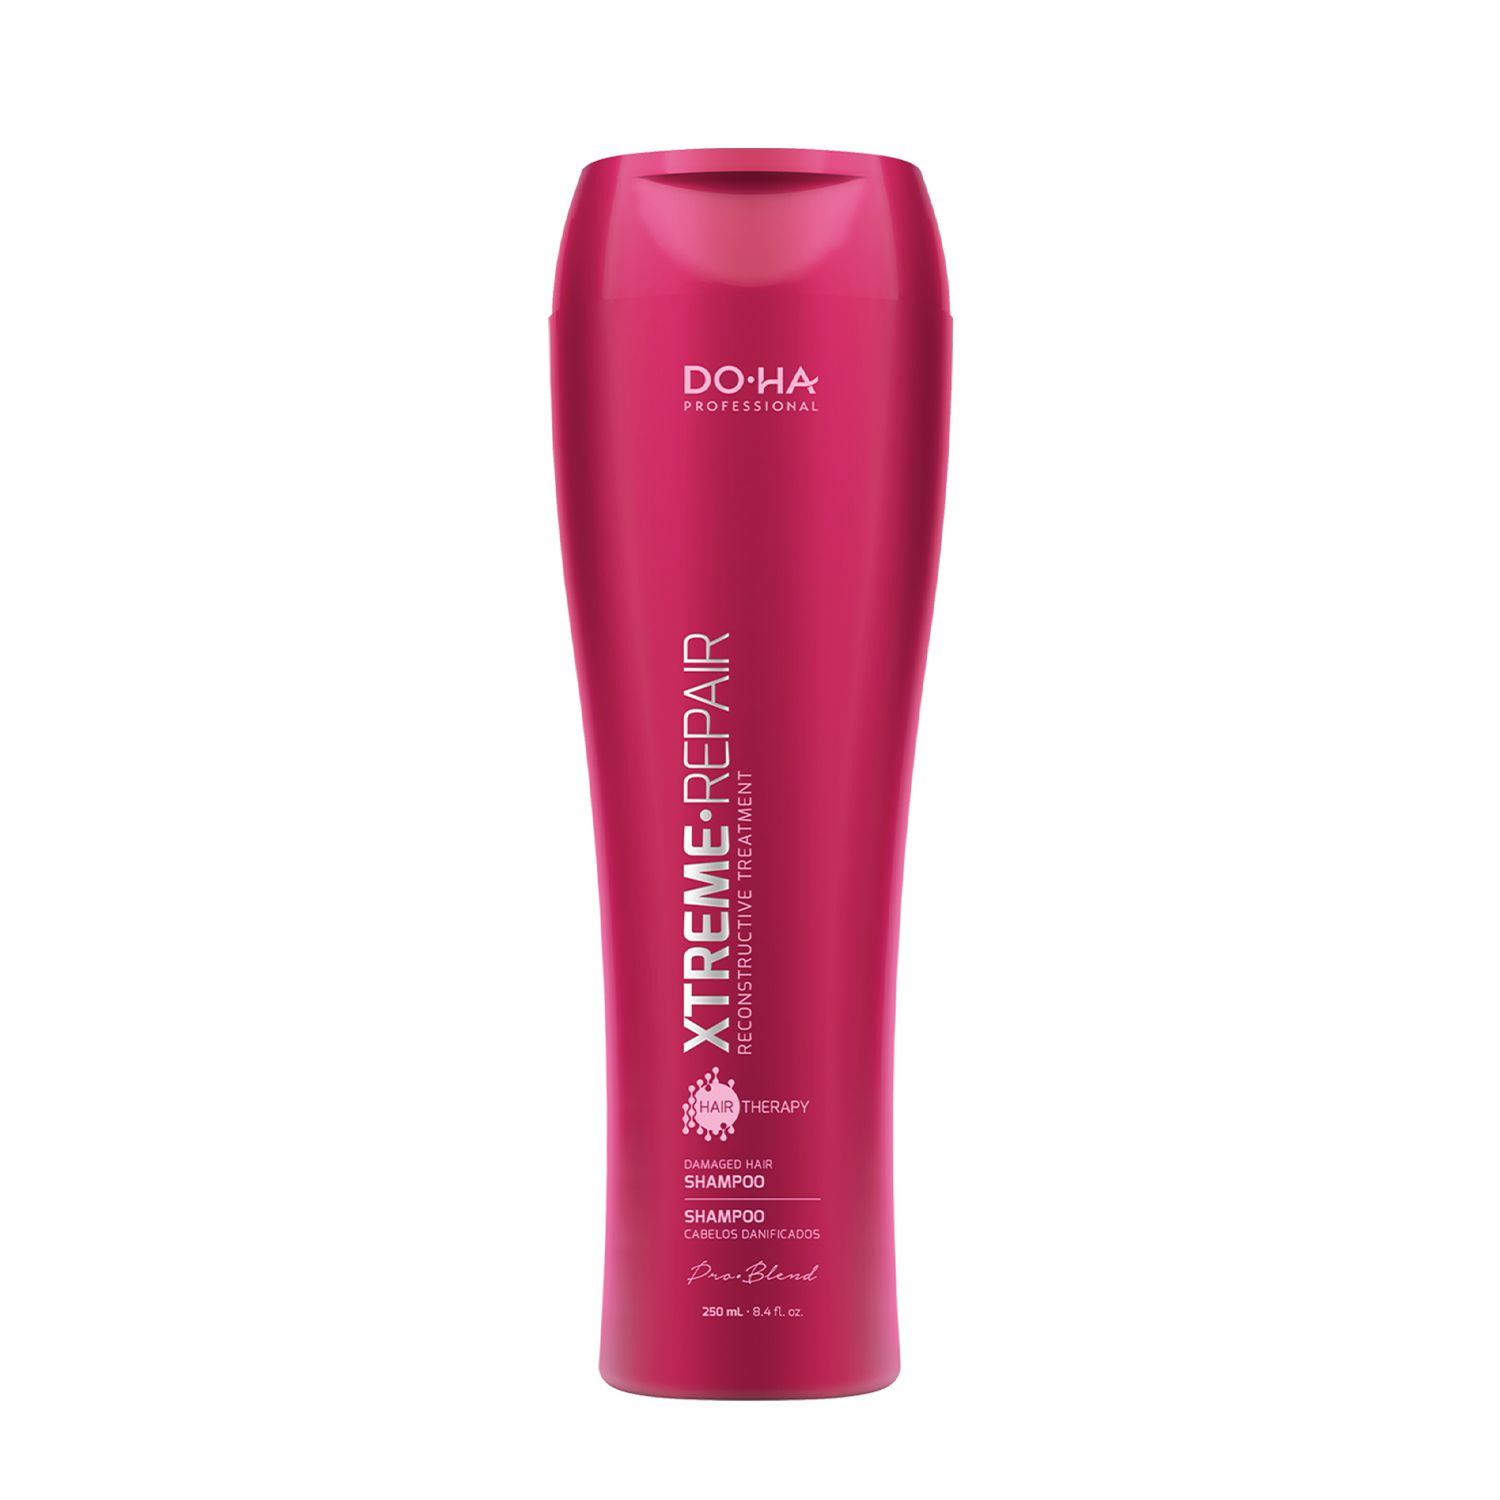 Xtreme Repair - Shampoo - 250mL